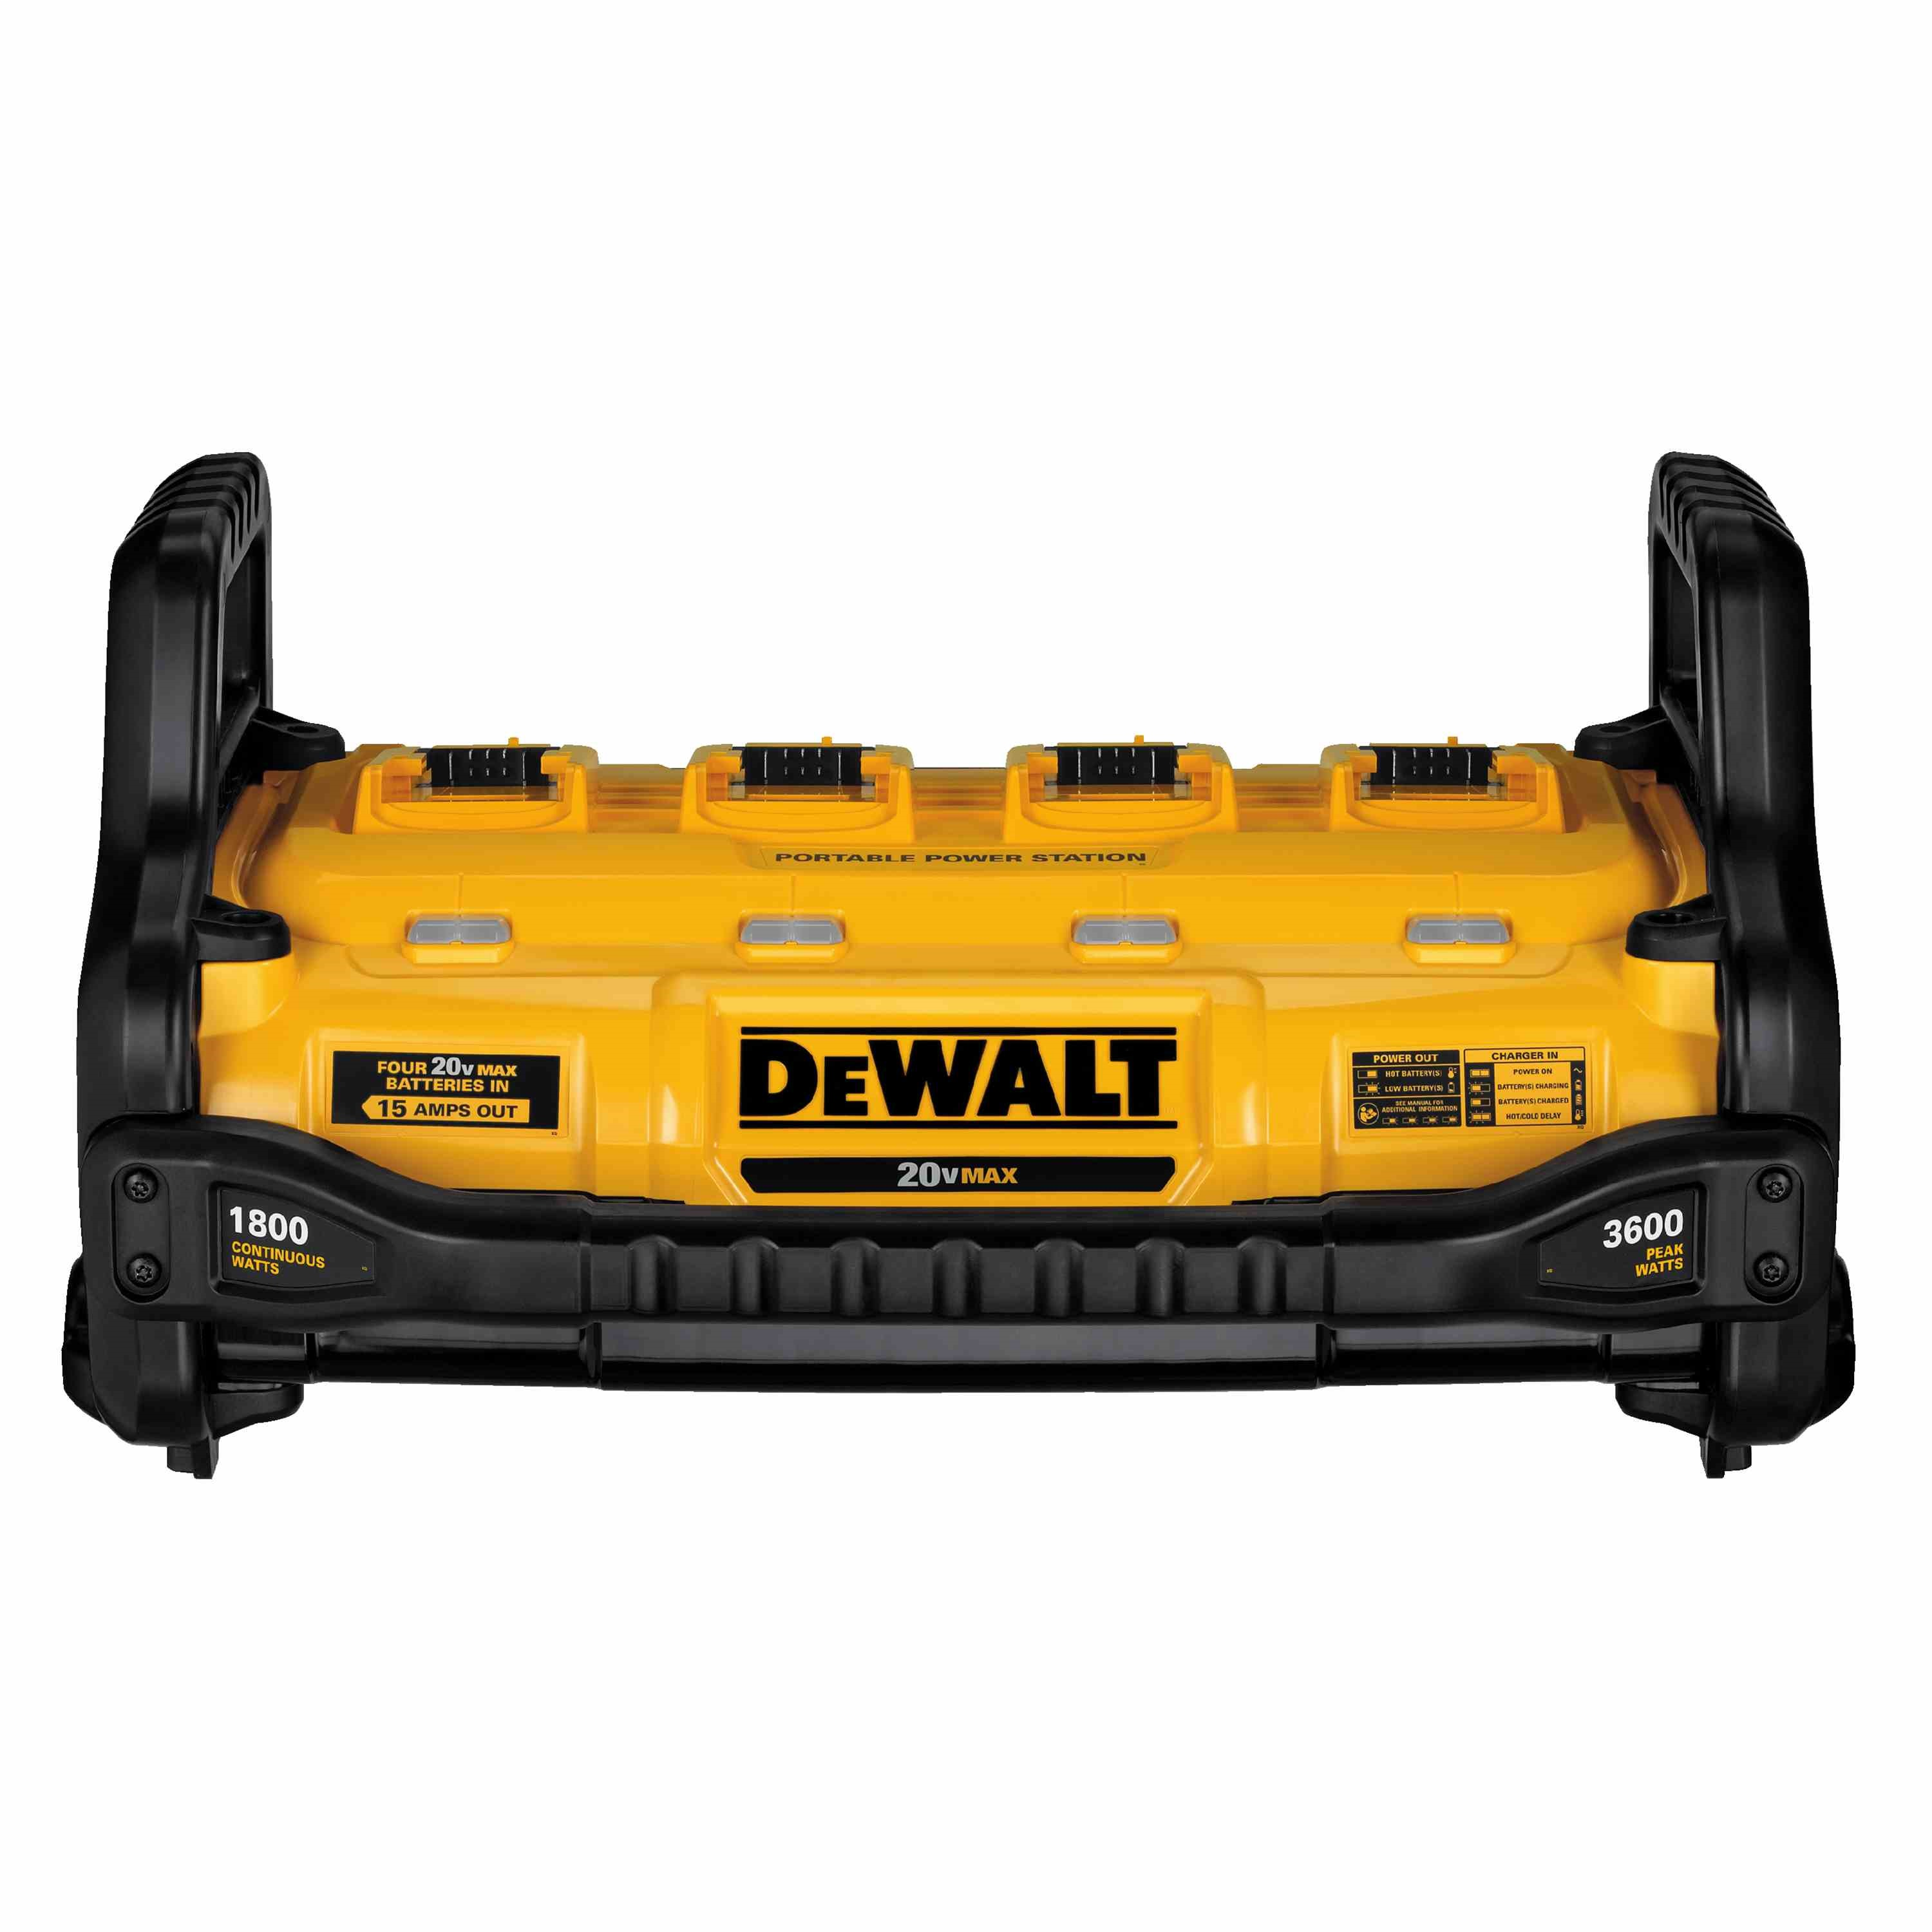 DEWALT 1800 Watt Portable Power Station and Parallel Battery Charger